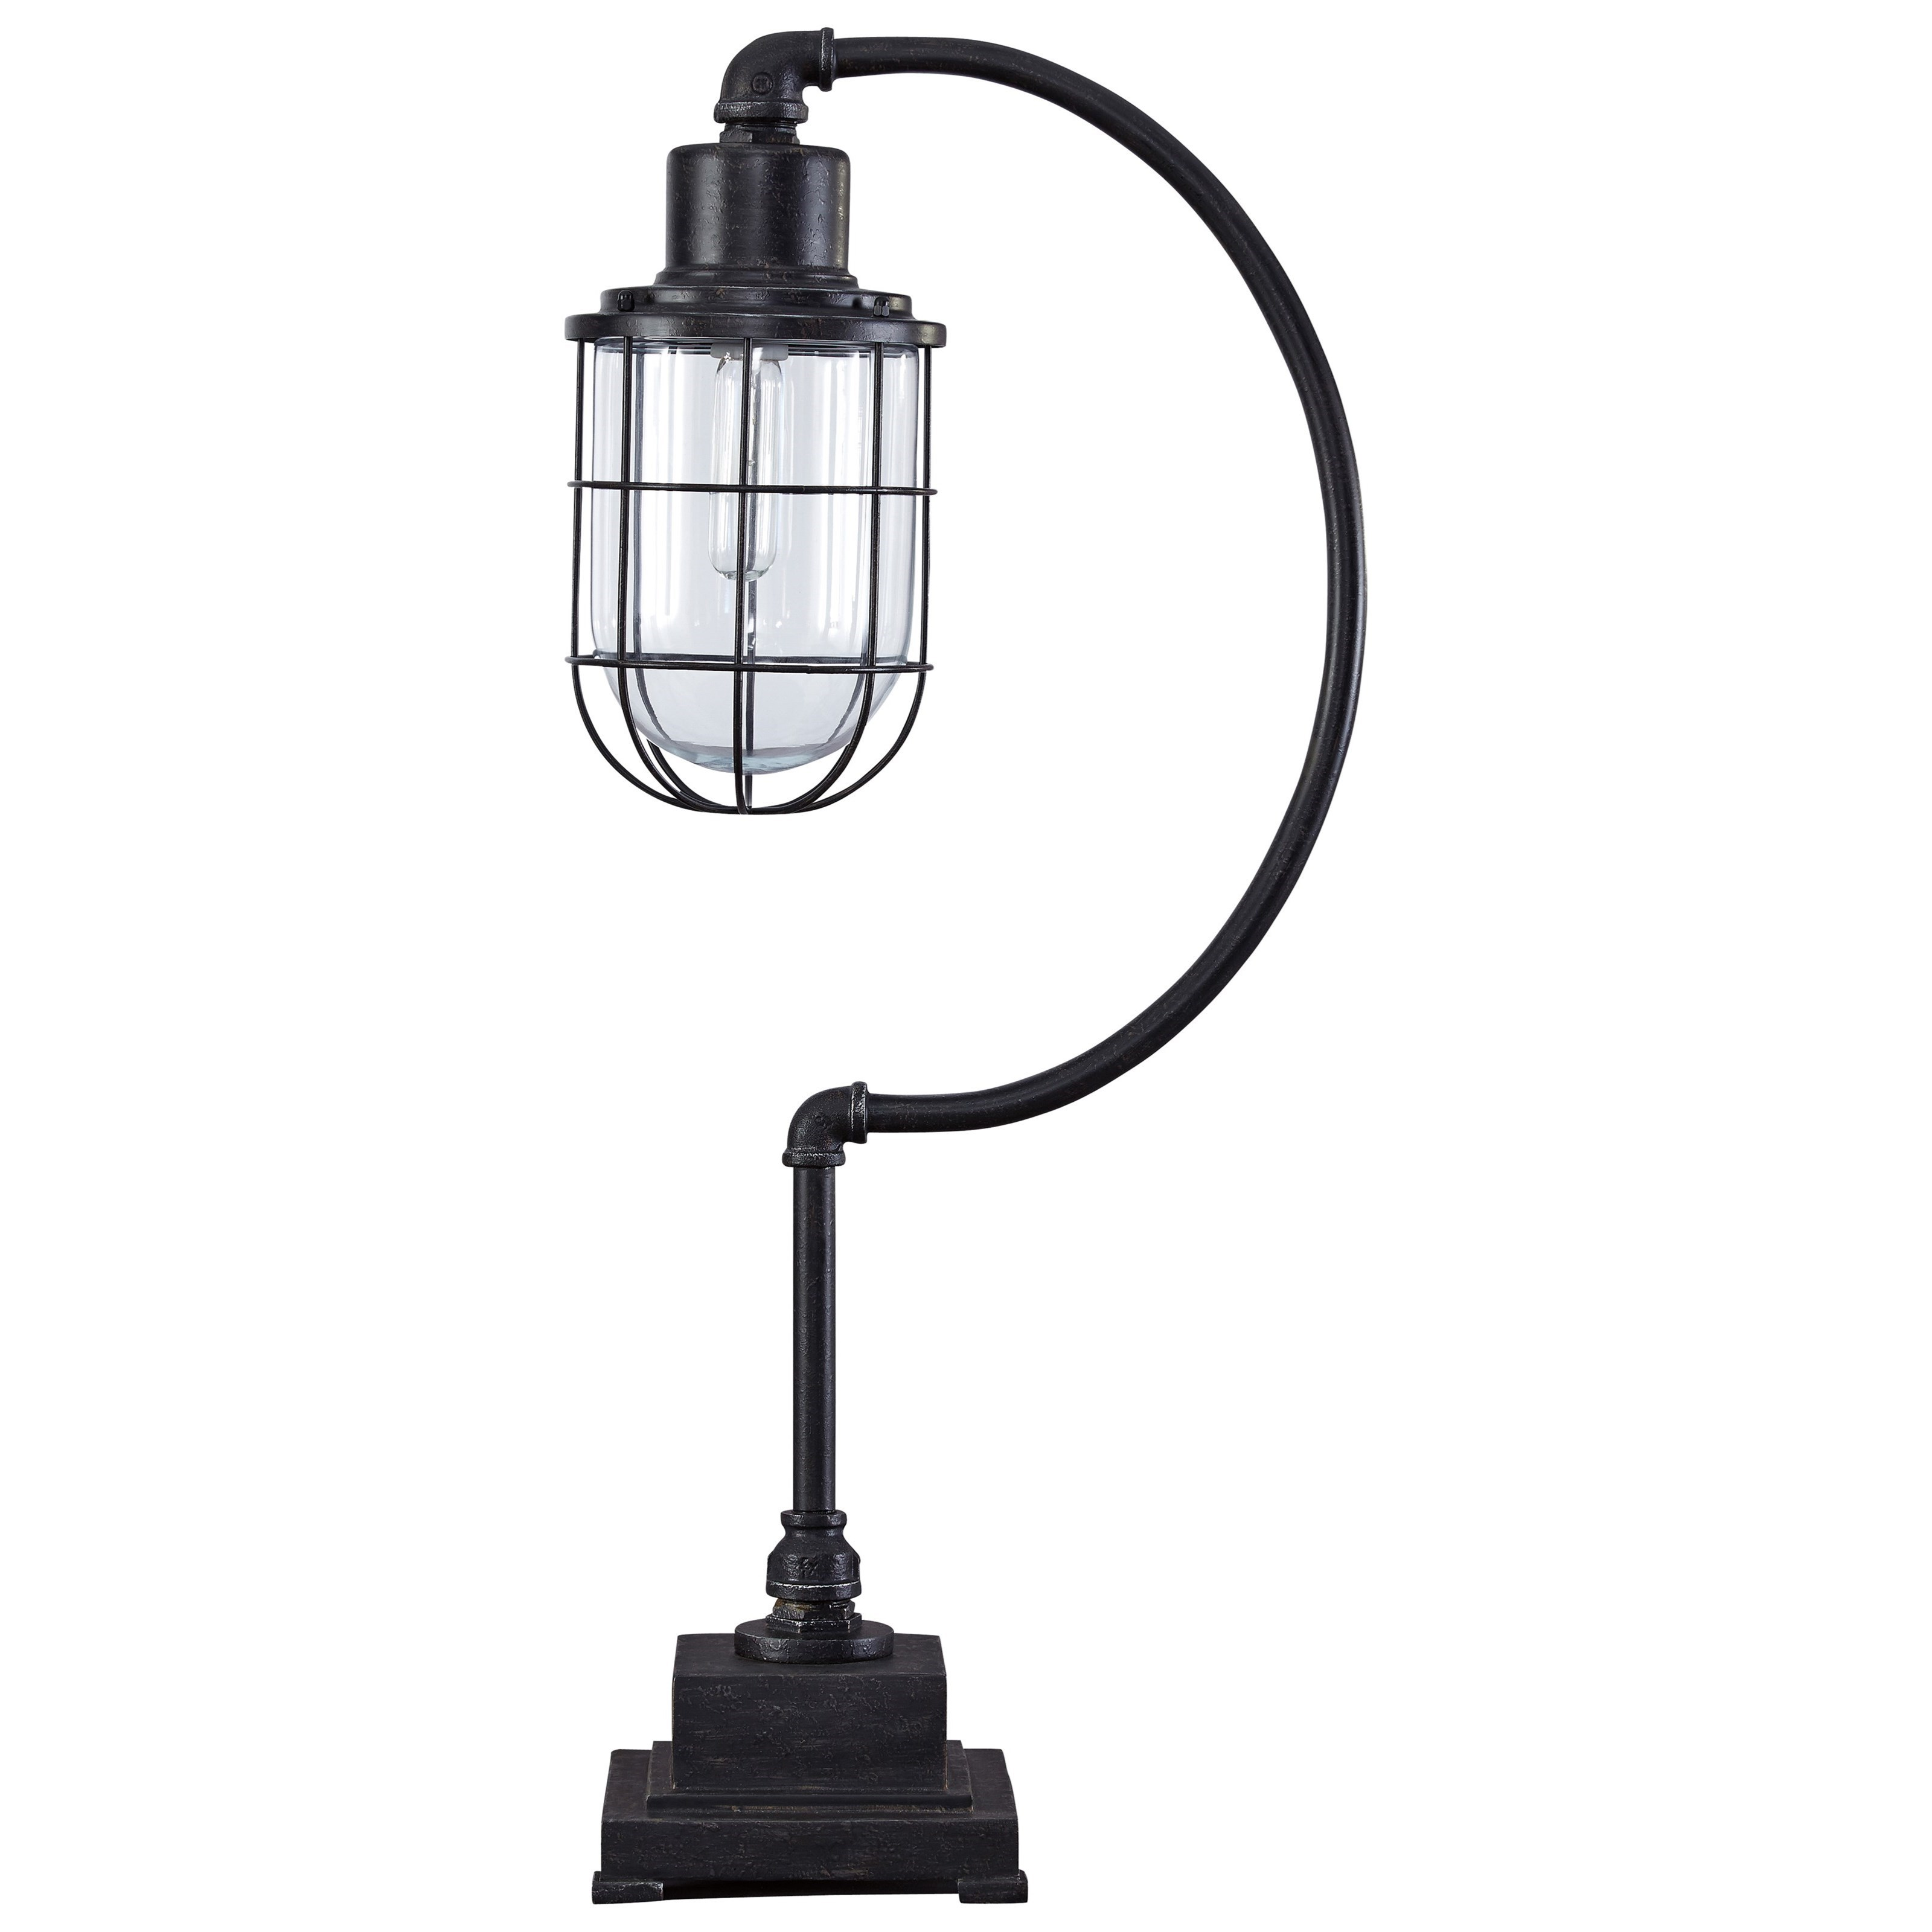 Lamps - Vintage Style Jae Antique Black Metal Desk Lamp by Ashley (Signature Design) at Johnny Janosik